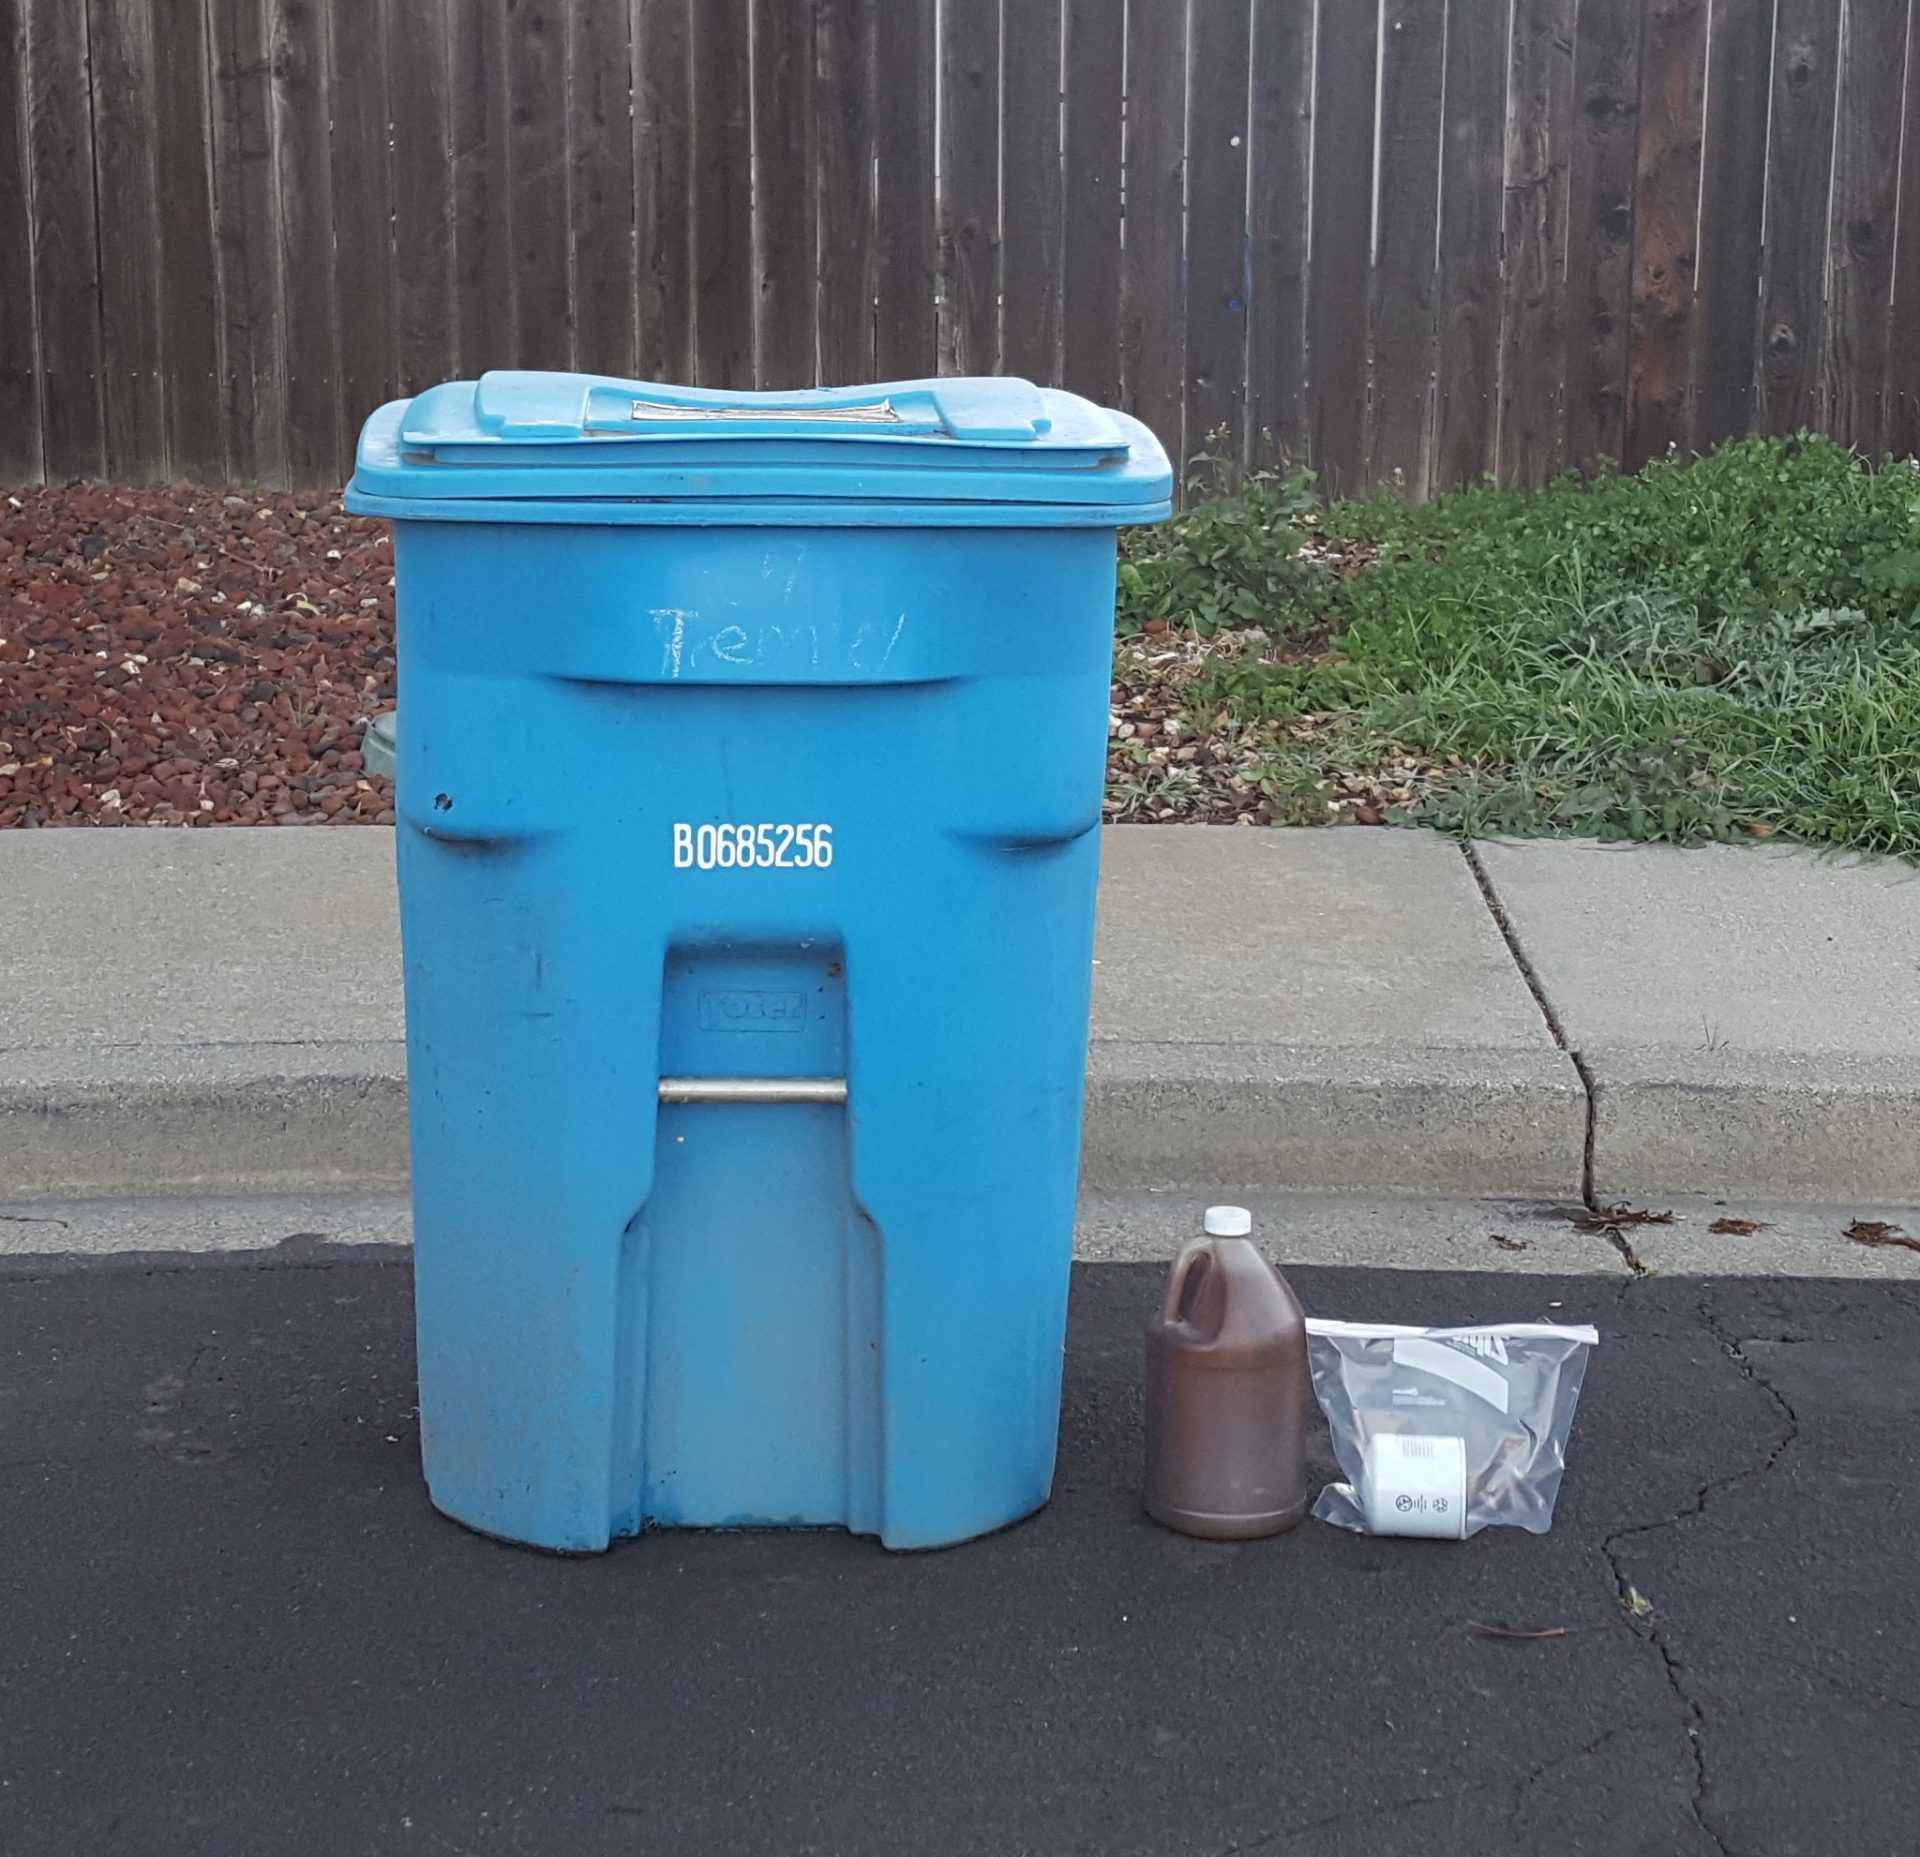 Used motor oil and filter placed next to the recycling cart for curbside pickup.